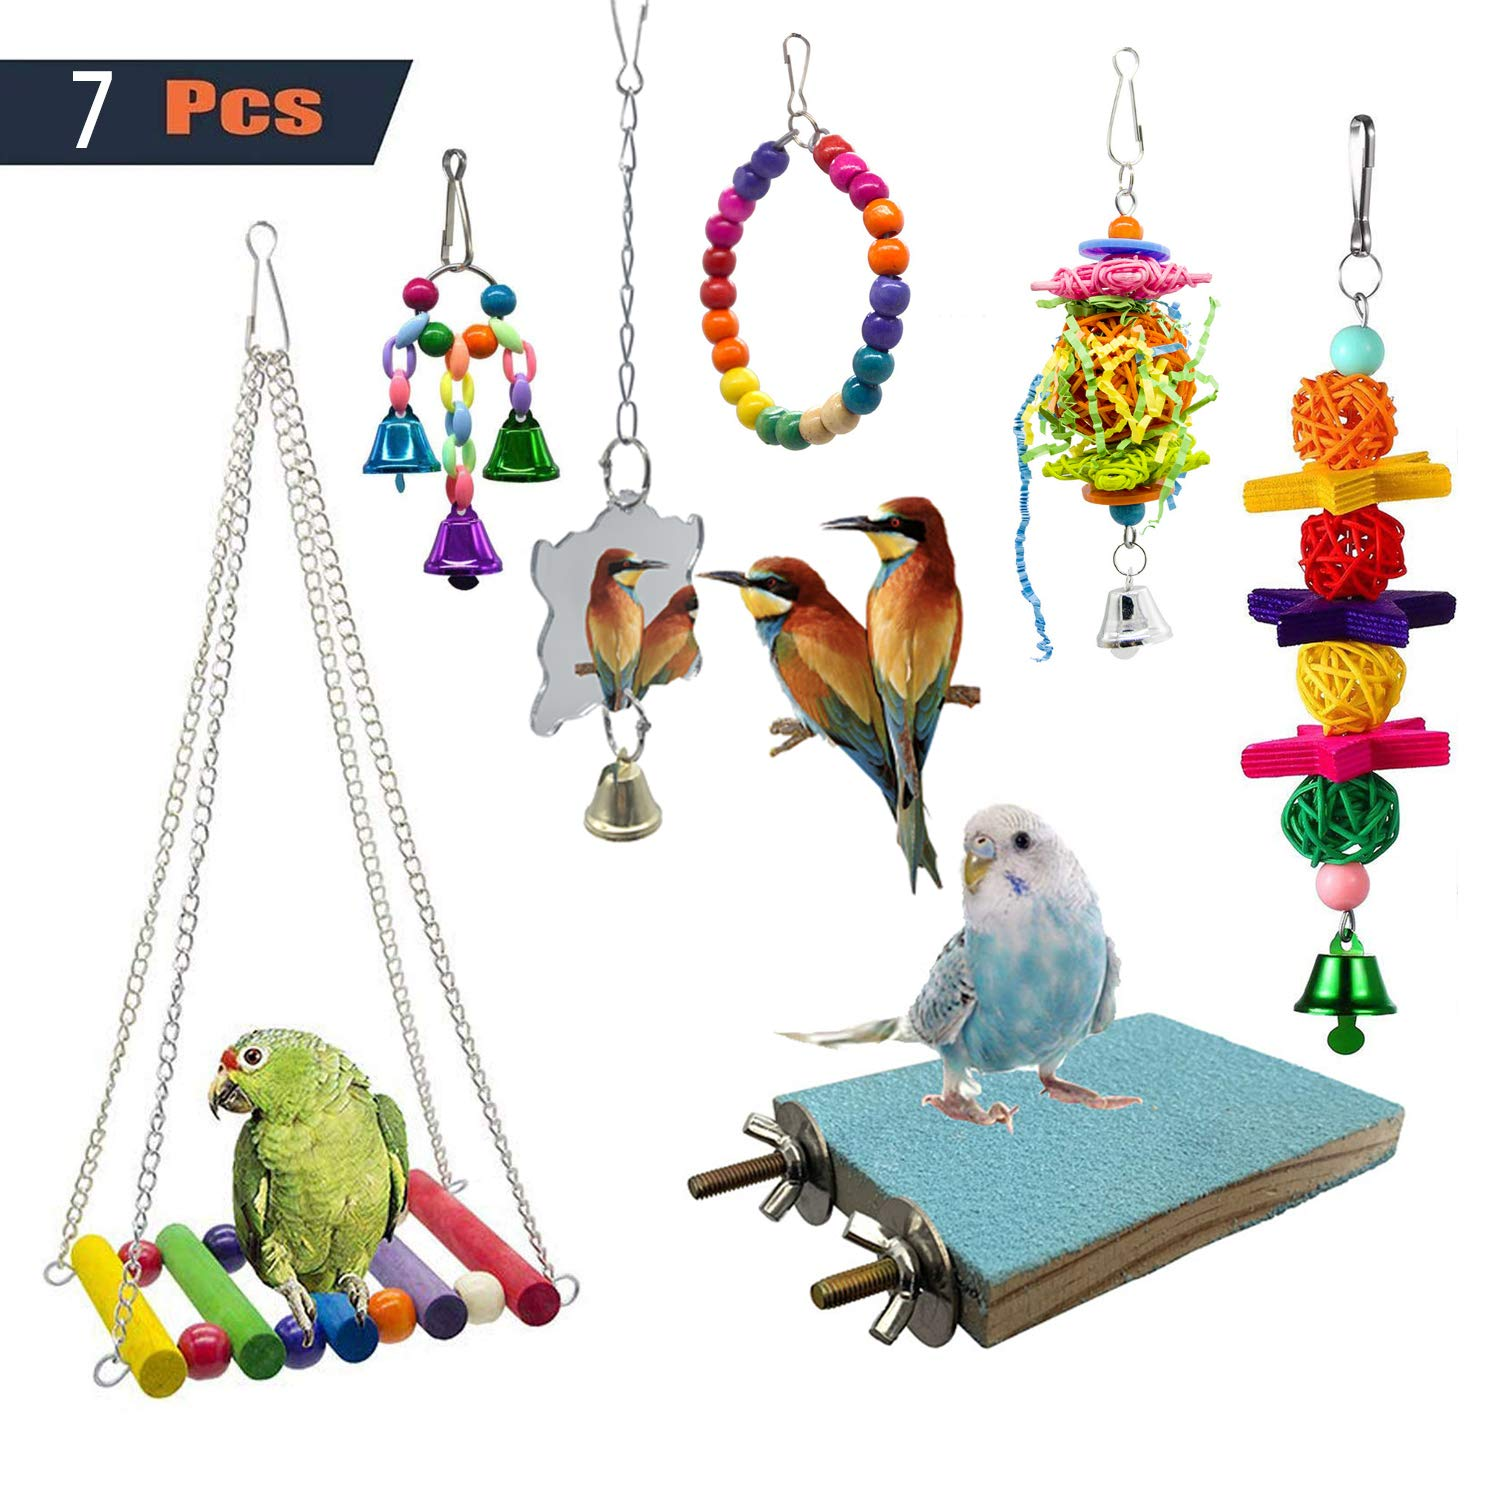 PINCHUANG 7 Packs Bird Swing Chewing Toys- Parrot Hammock Bell Toys Suitable for Small Parakeets, Cockatiels, Conures, Finches,Budgie,Macaws, Parrots, Love Birds by SHANTU